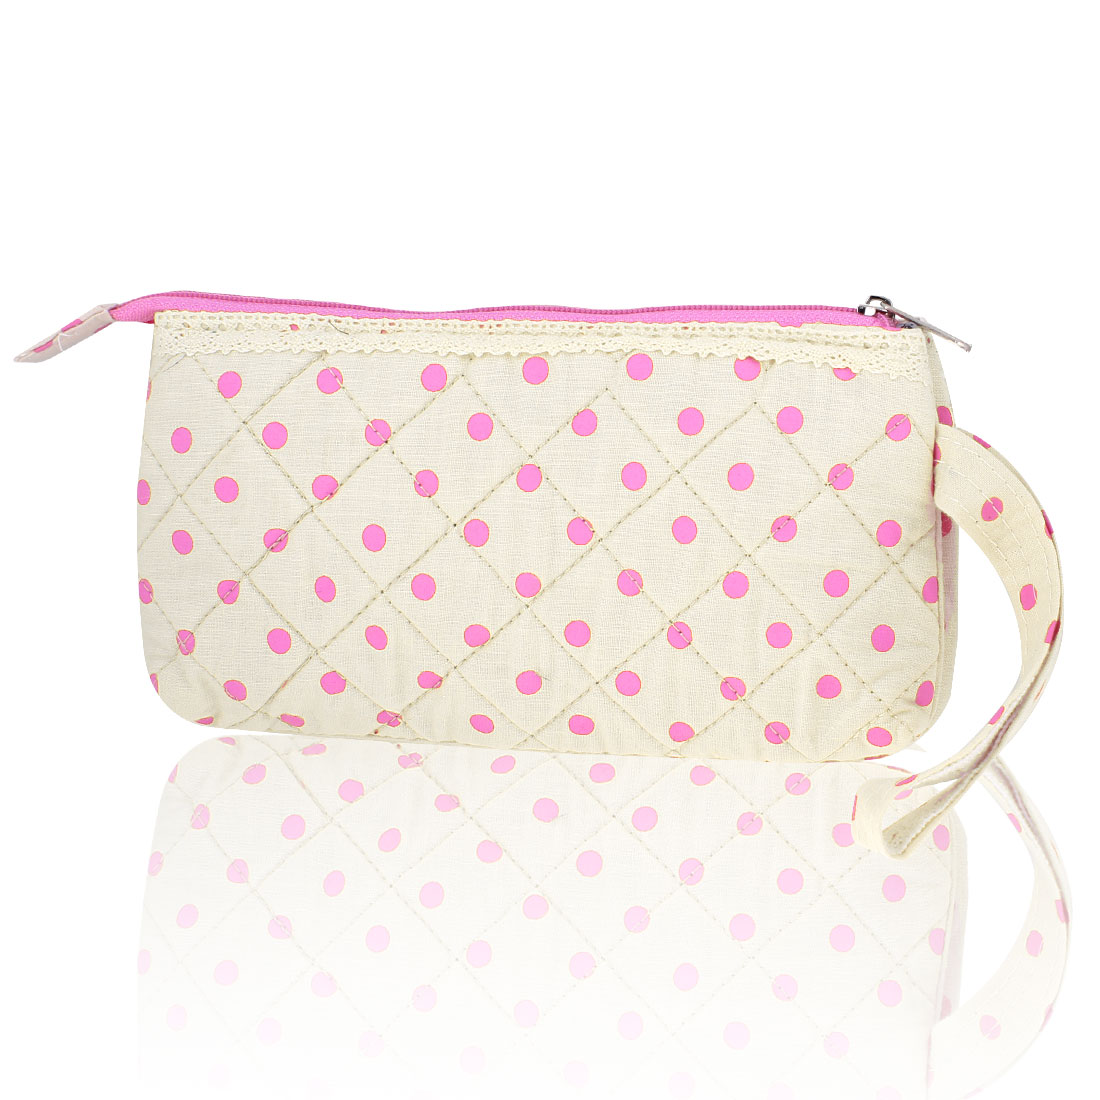 Pink Ivory 3 Compartments Zippered Wrist Wallet Cash Holder w String for Lady